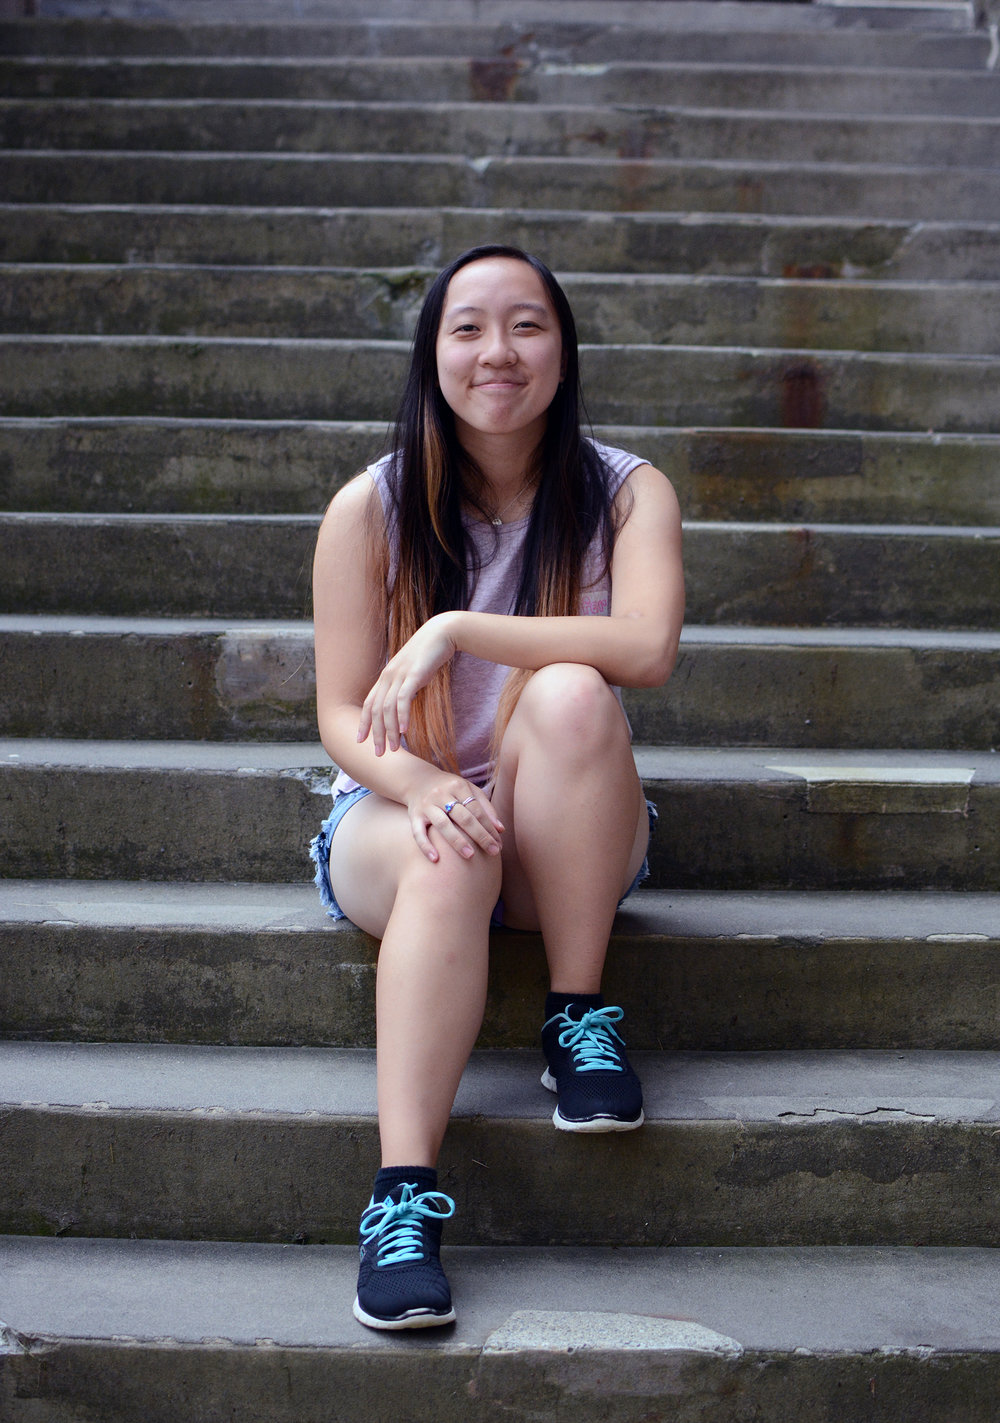 Jennifer Yu   Co-Director of Mentorship Initiatives    Year : Sophomore, 2021  Major : Computer Science  Other Involvements : Steel Bridge, Guild of Visual Arts, Let's Get Coffee, Society of Women Engineers, Chinese Students Association  As Co-Director of Mentorship Initiatives, Jennifer strives to help underclassmen adjust to Cornell and develop as leaders in the community.  She also hopes to facilitate lifelong, meaningful relationships between underclassmen and upperclassmen. In her free time, you can probably find her in Hollister Hall's machine shop pretending to be a civil engineer or Willard Straight Hall's Slope Studio pretending to be an art major.